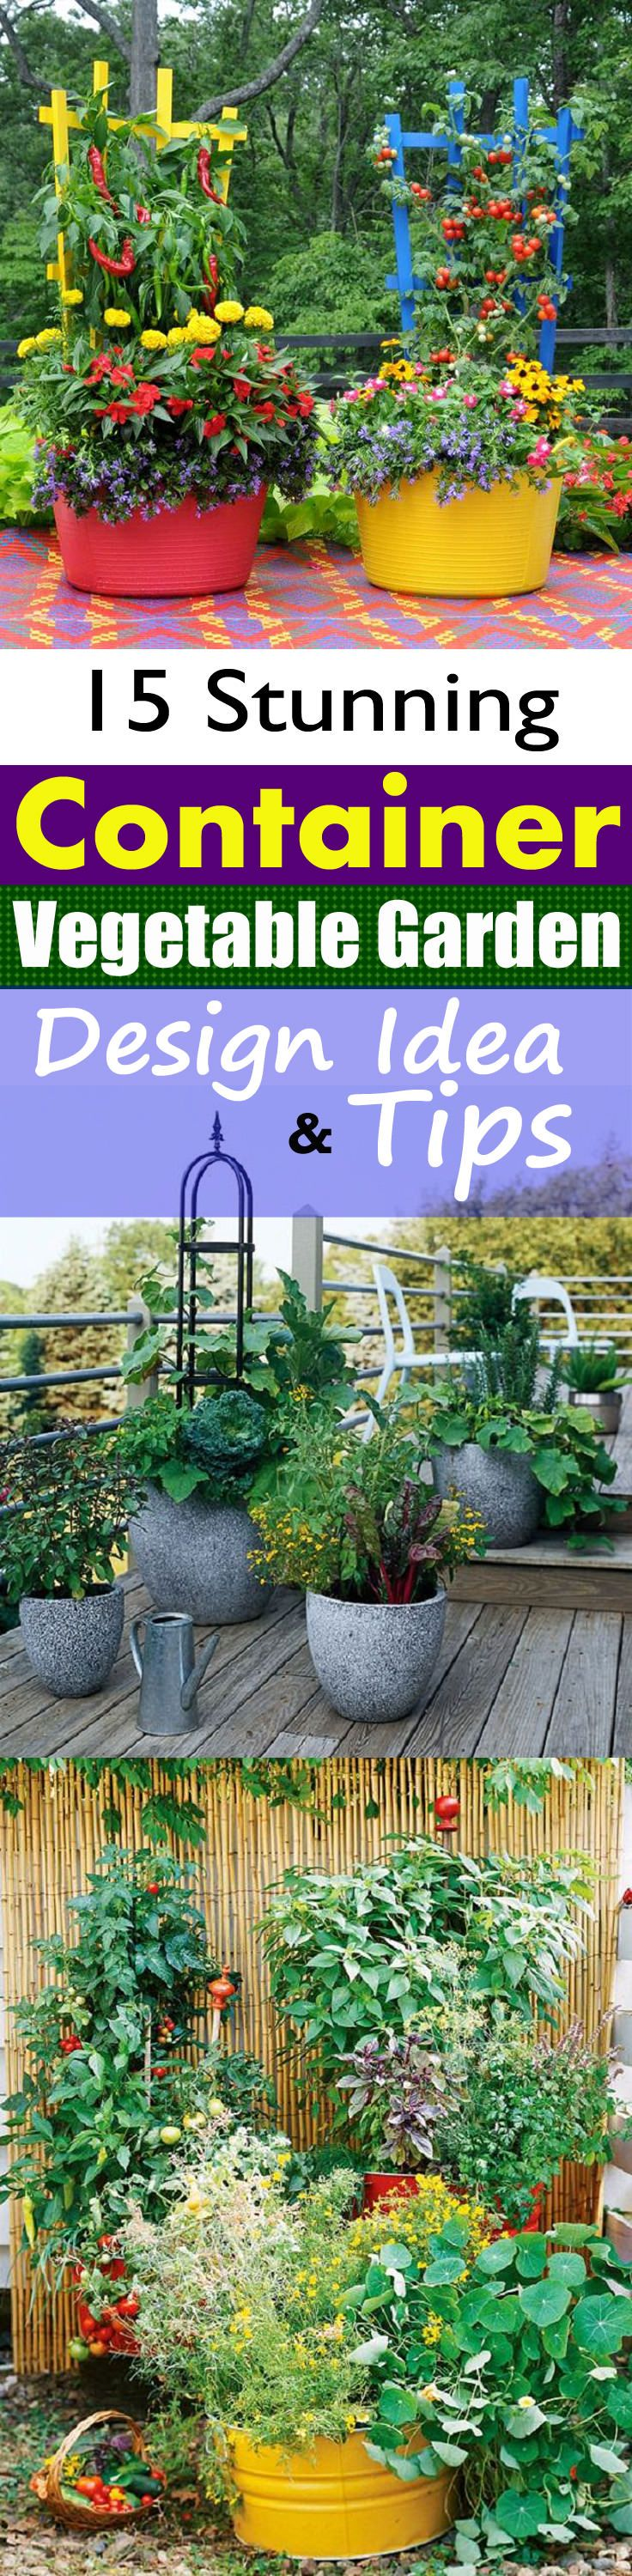 Container Vegetable Garden Ideas ideas for container vegetable gardening 15 Stunning Container Vegetable Garden Design Ideas Tips